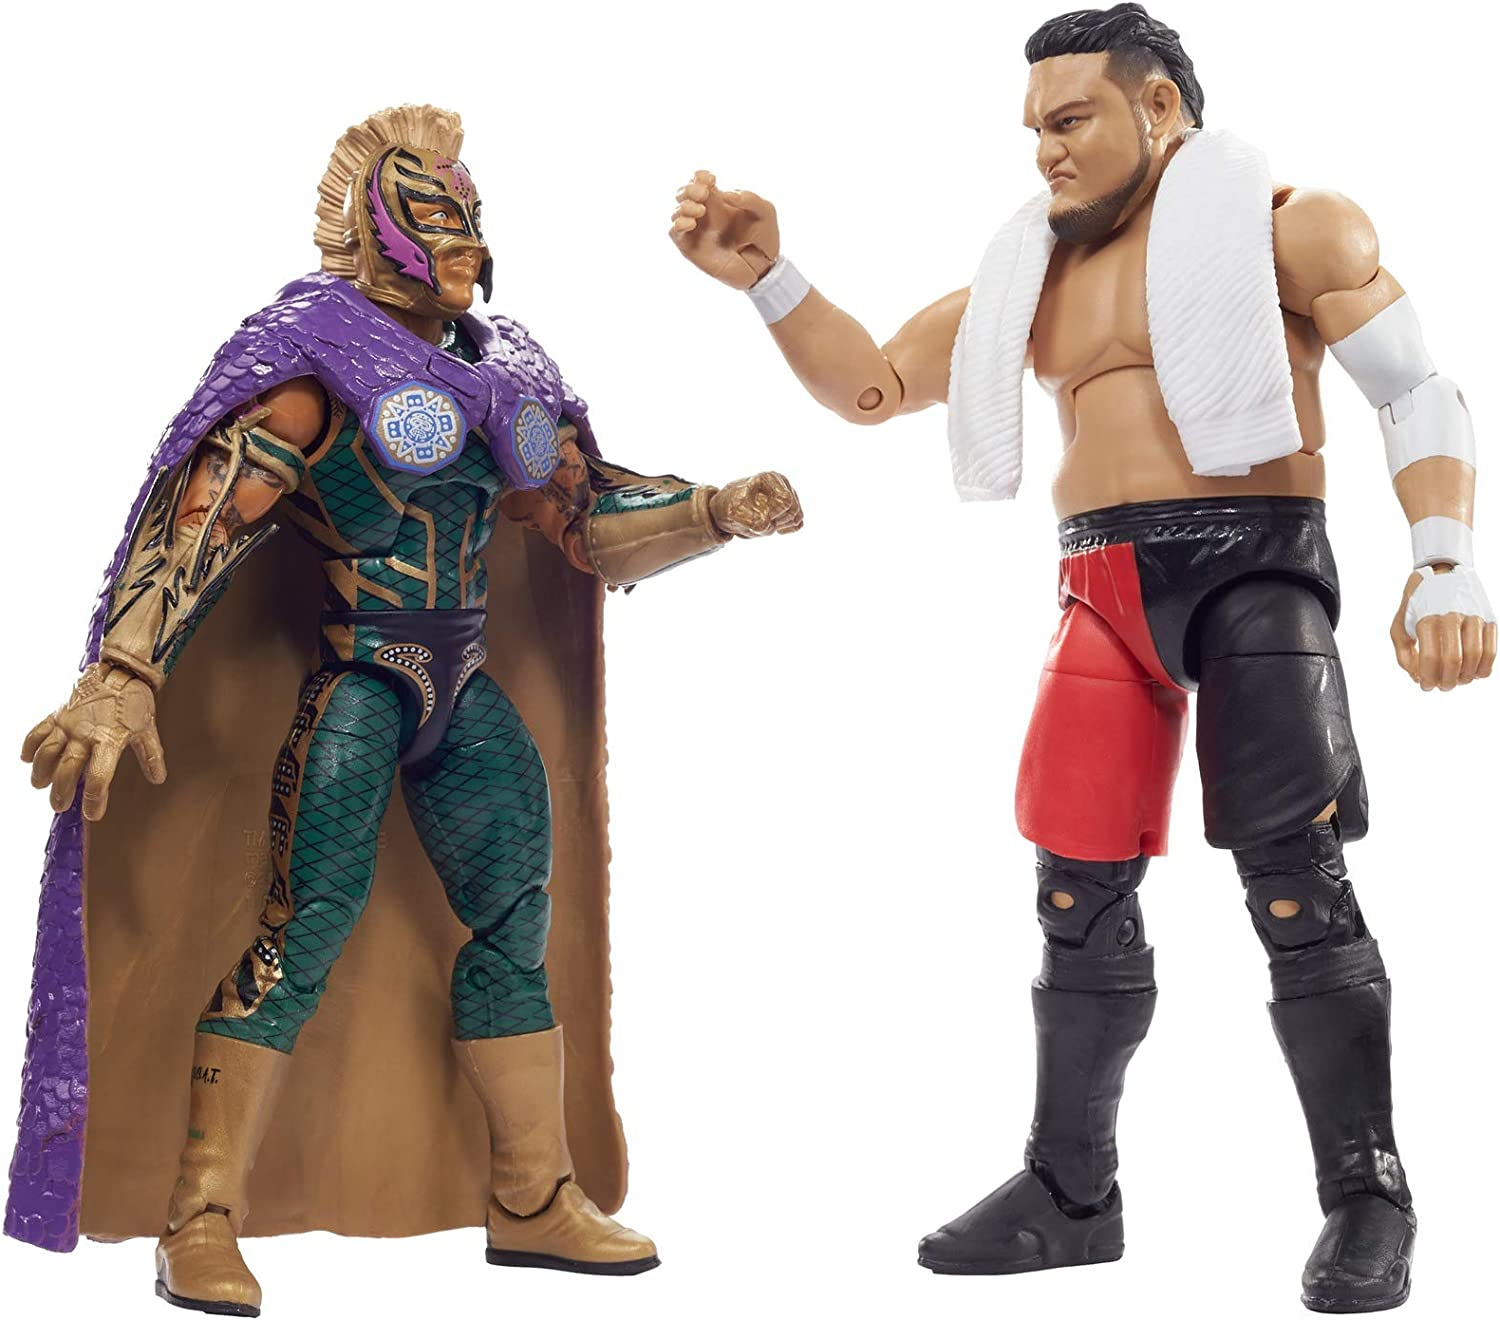 WWE Battle Pack with Two 6-inch Articulated Action Figures & Ring Gear, Mysterio Vs Somoa Joe